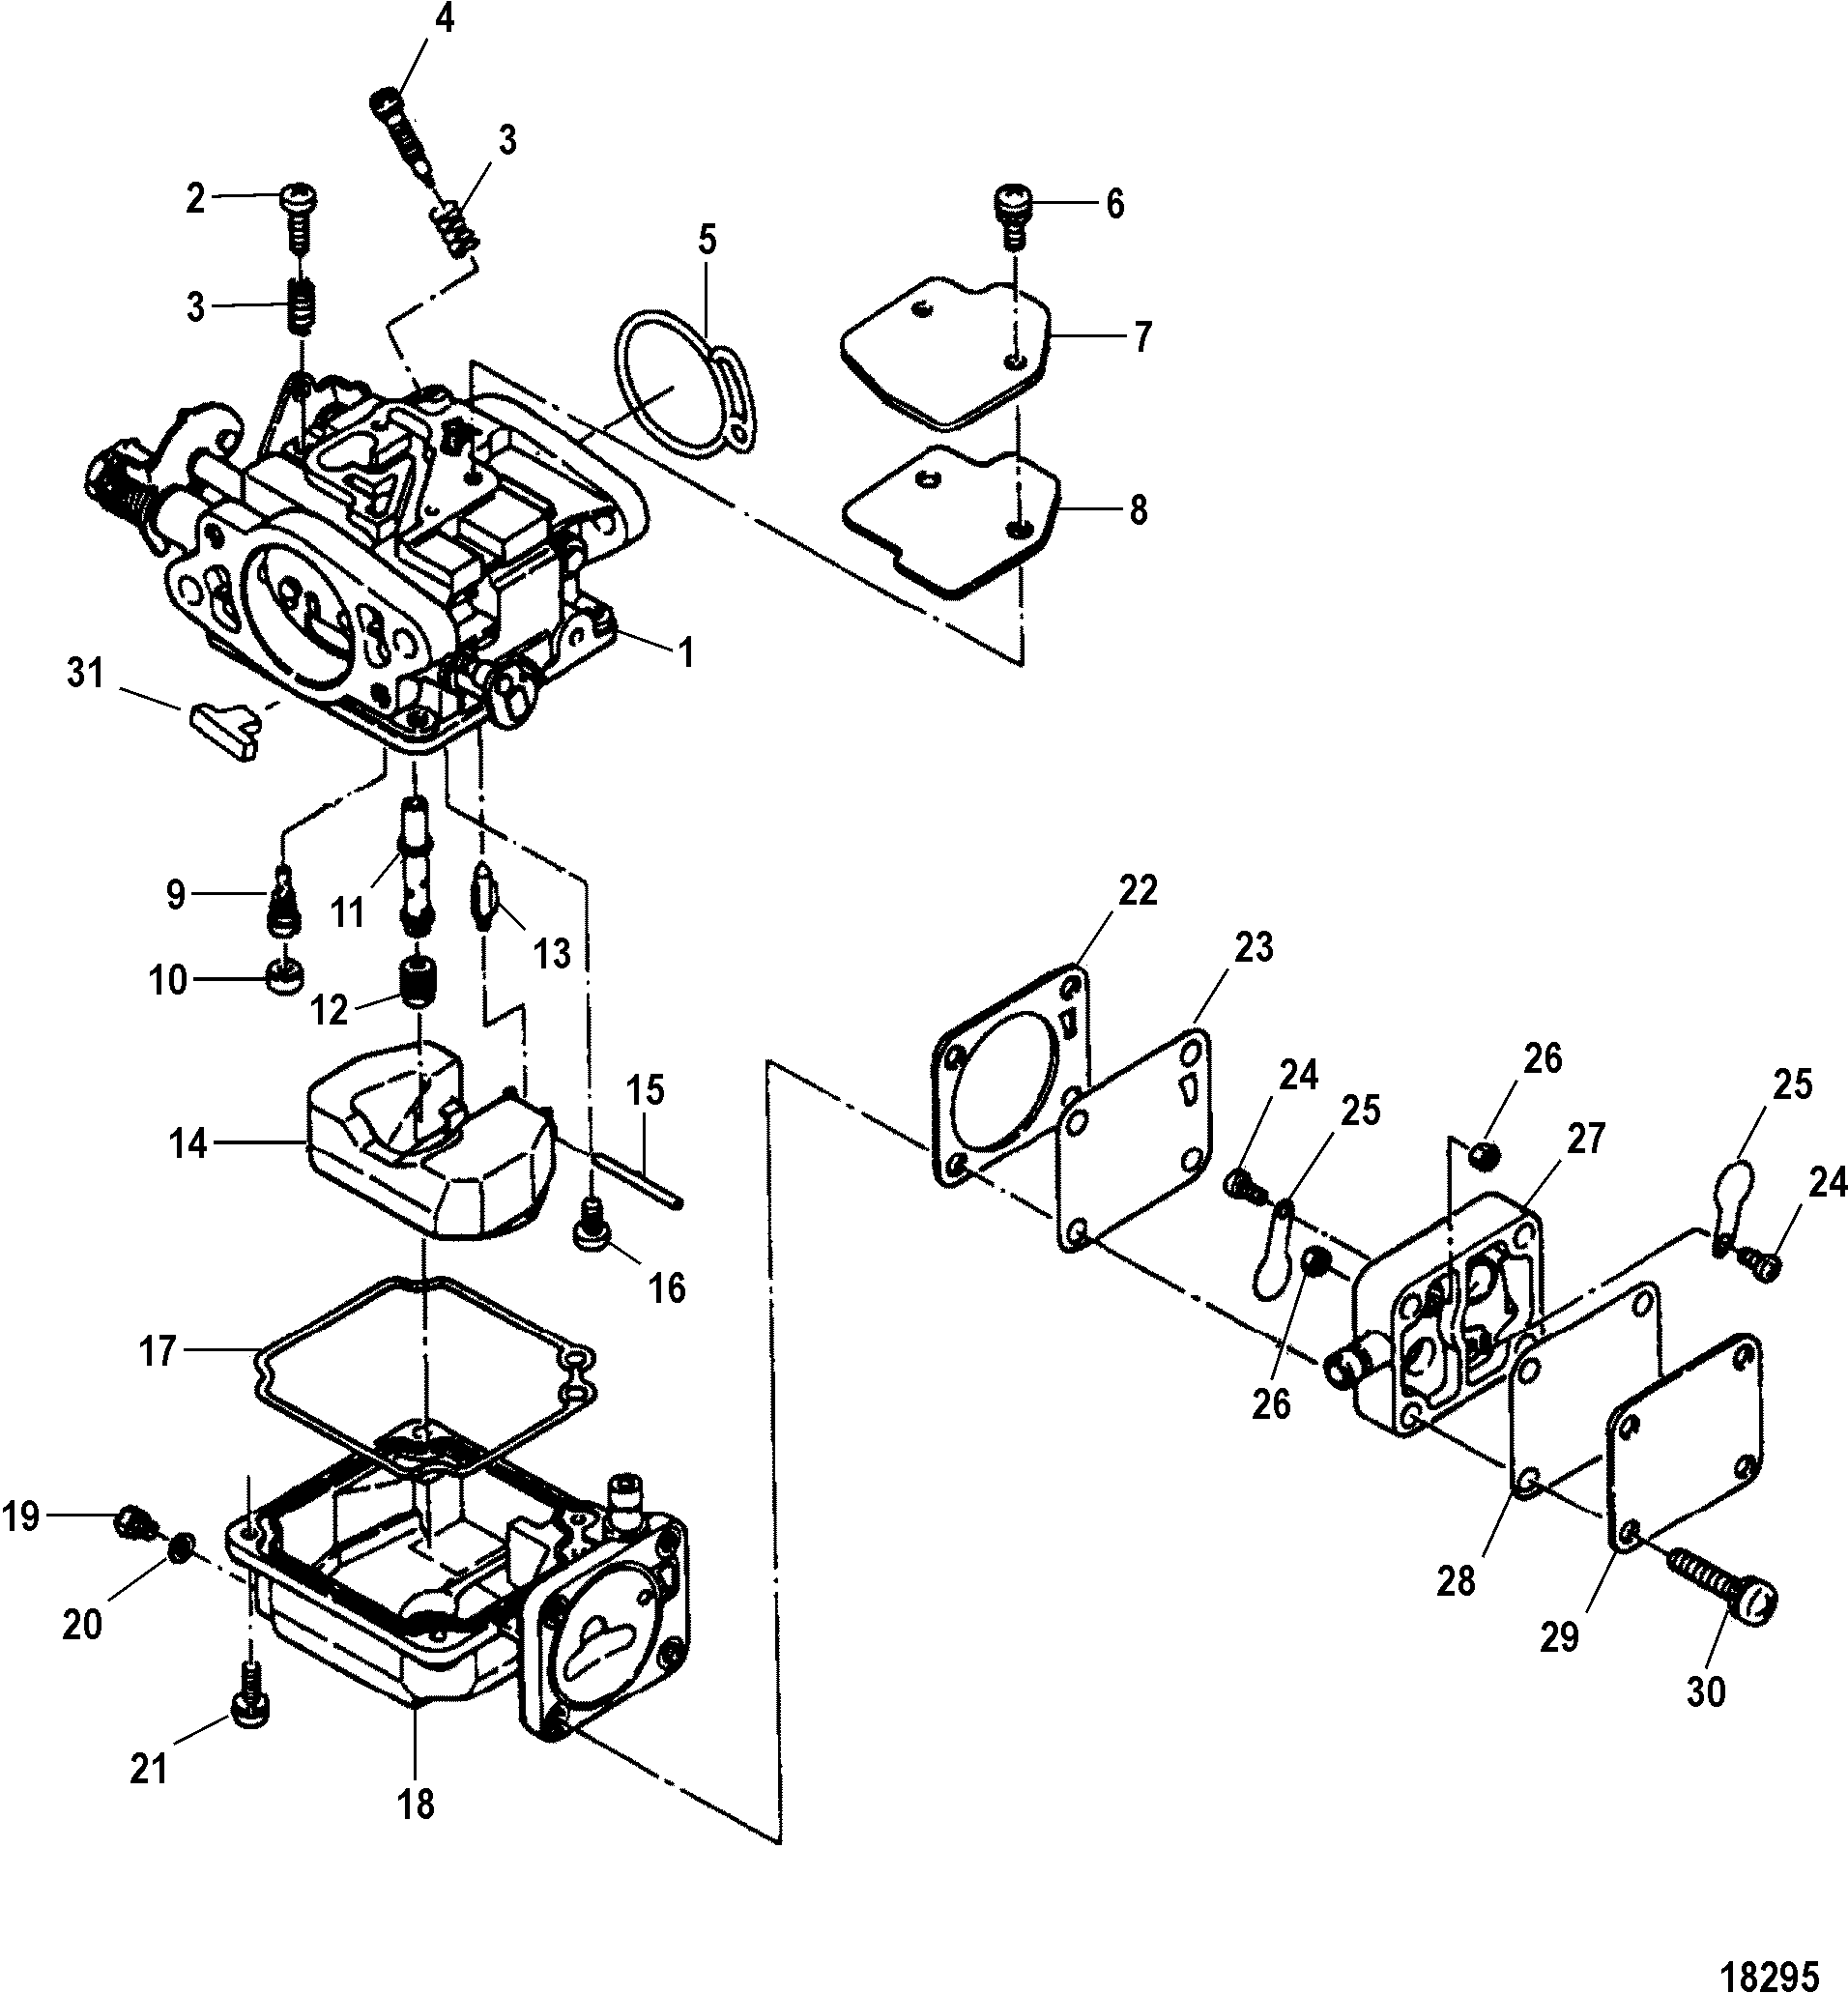 9 Mercury Outboard Engine Parts Diagram, 9, Free Engine